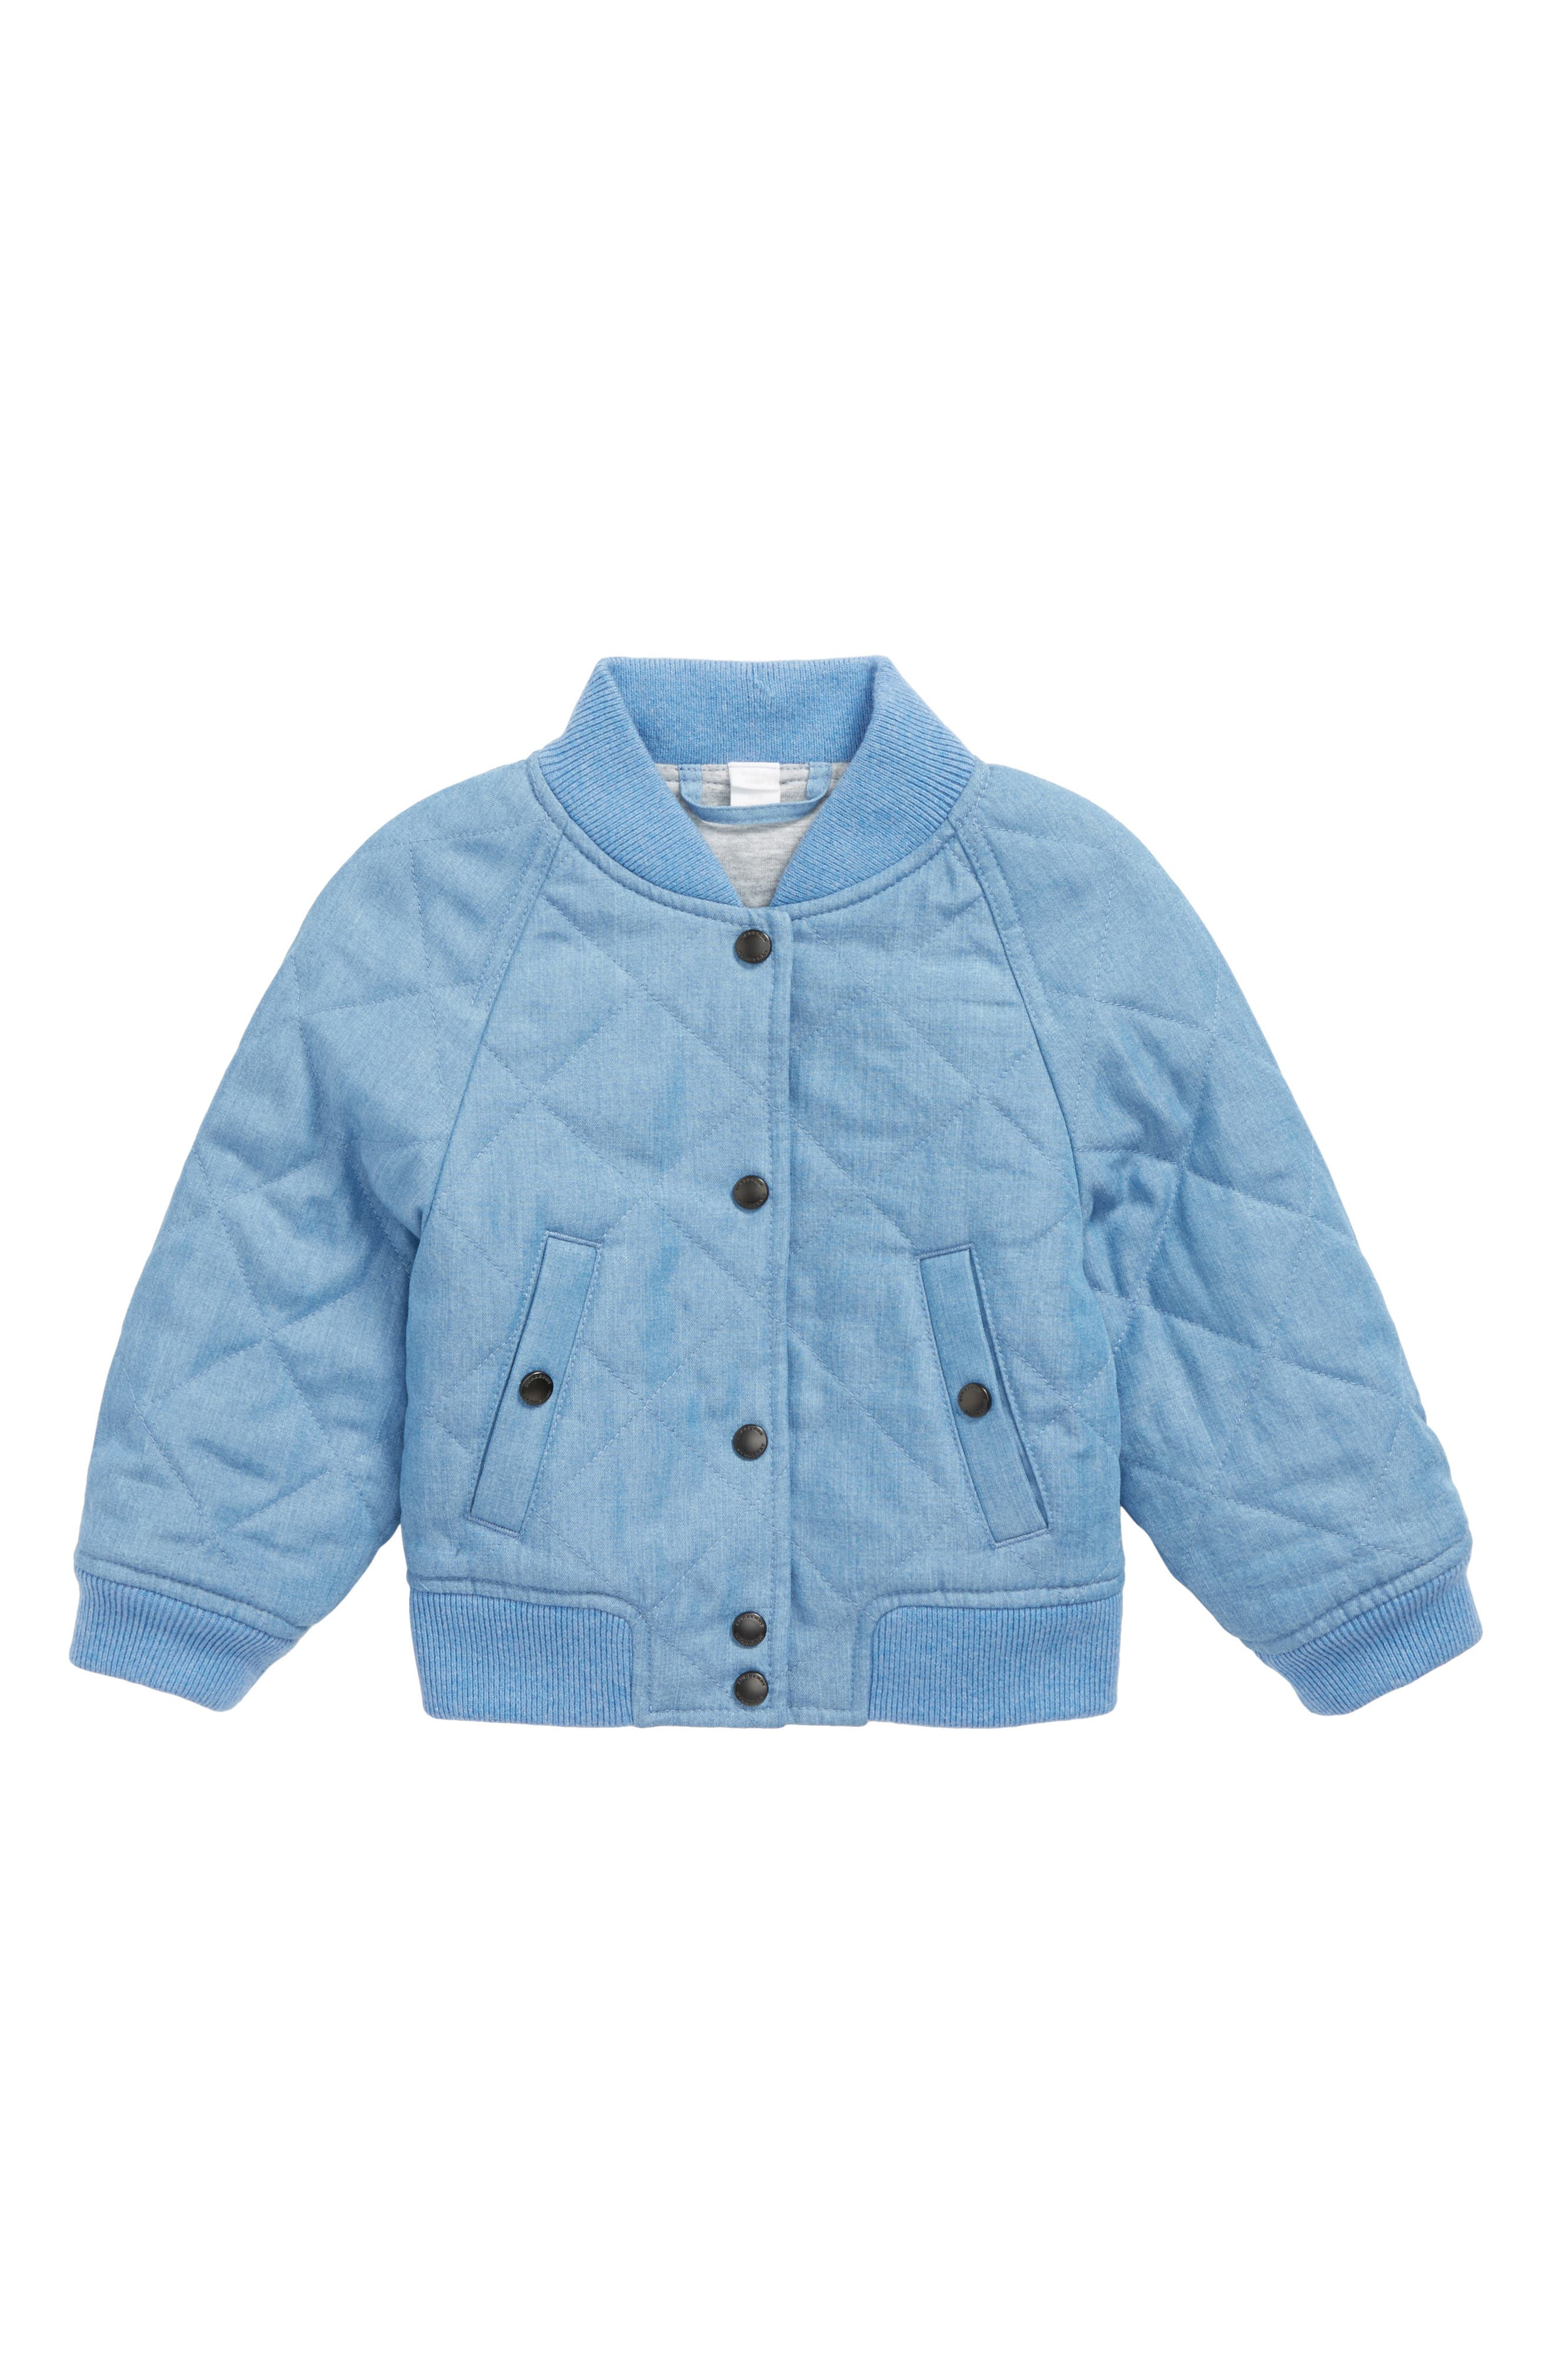 Joelle Denim Quilted Bomber Jacket,                         Main,                         color, 409